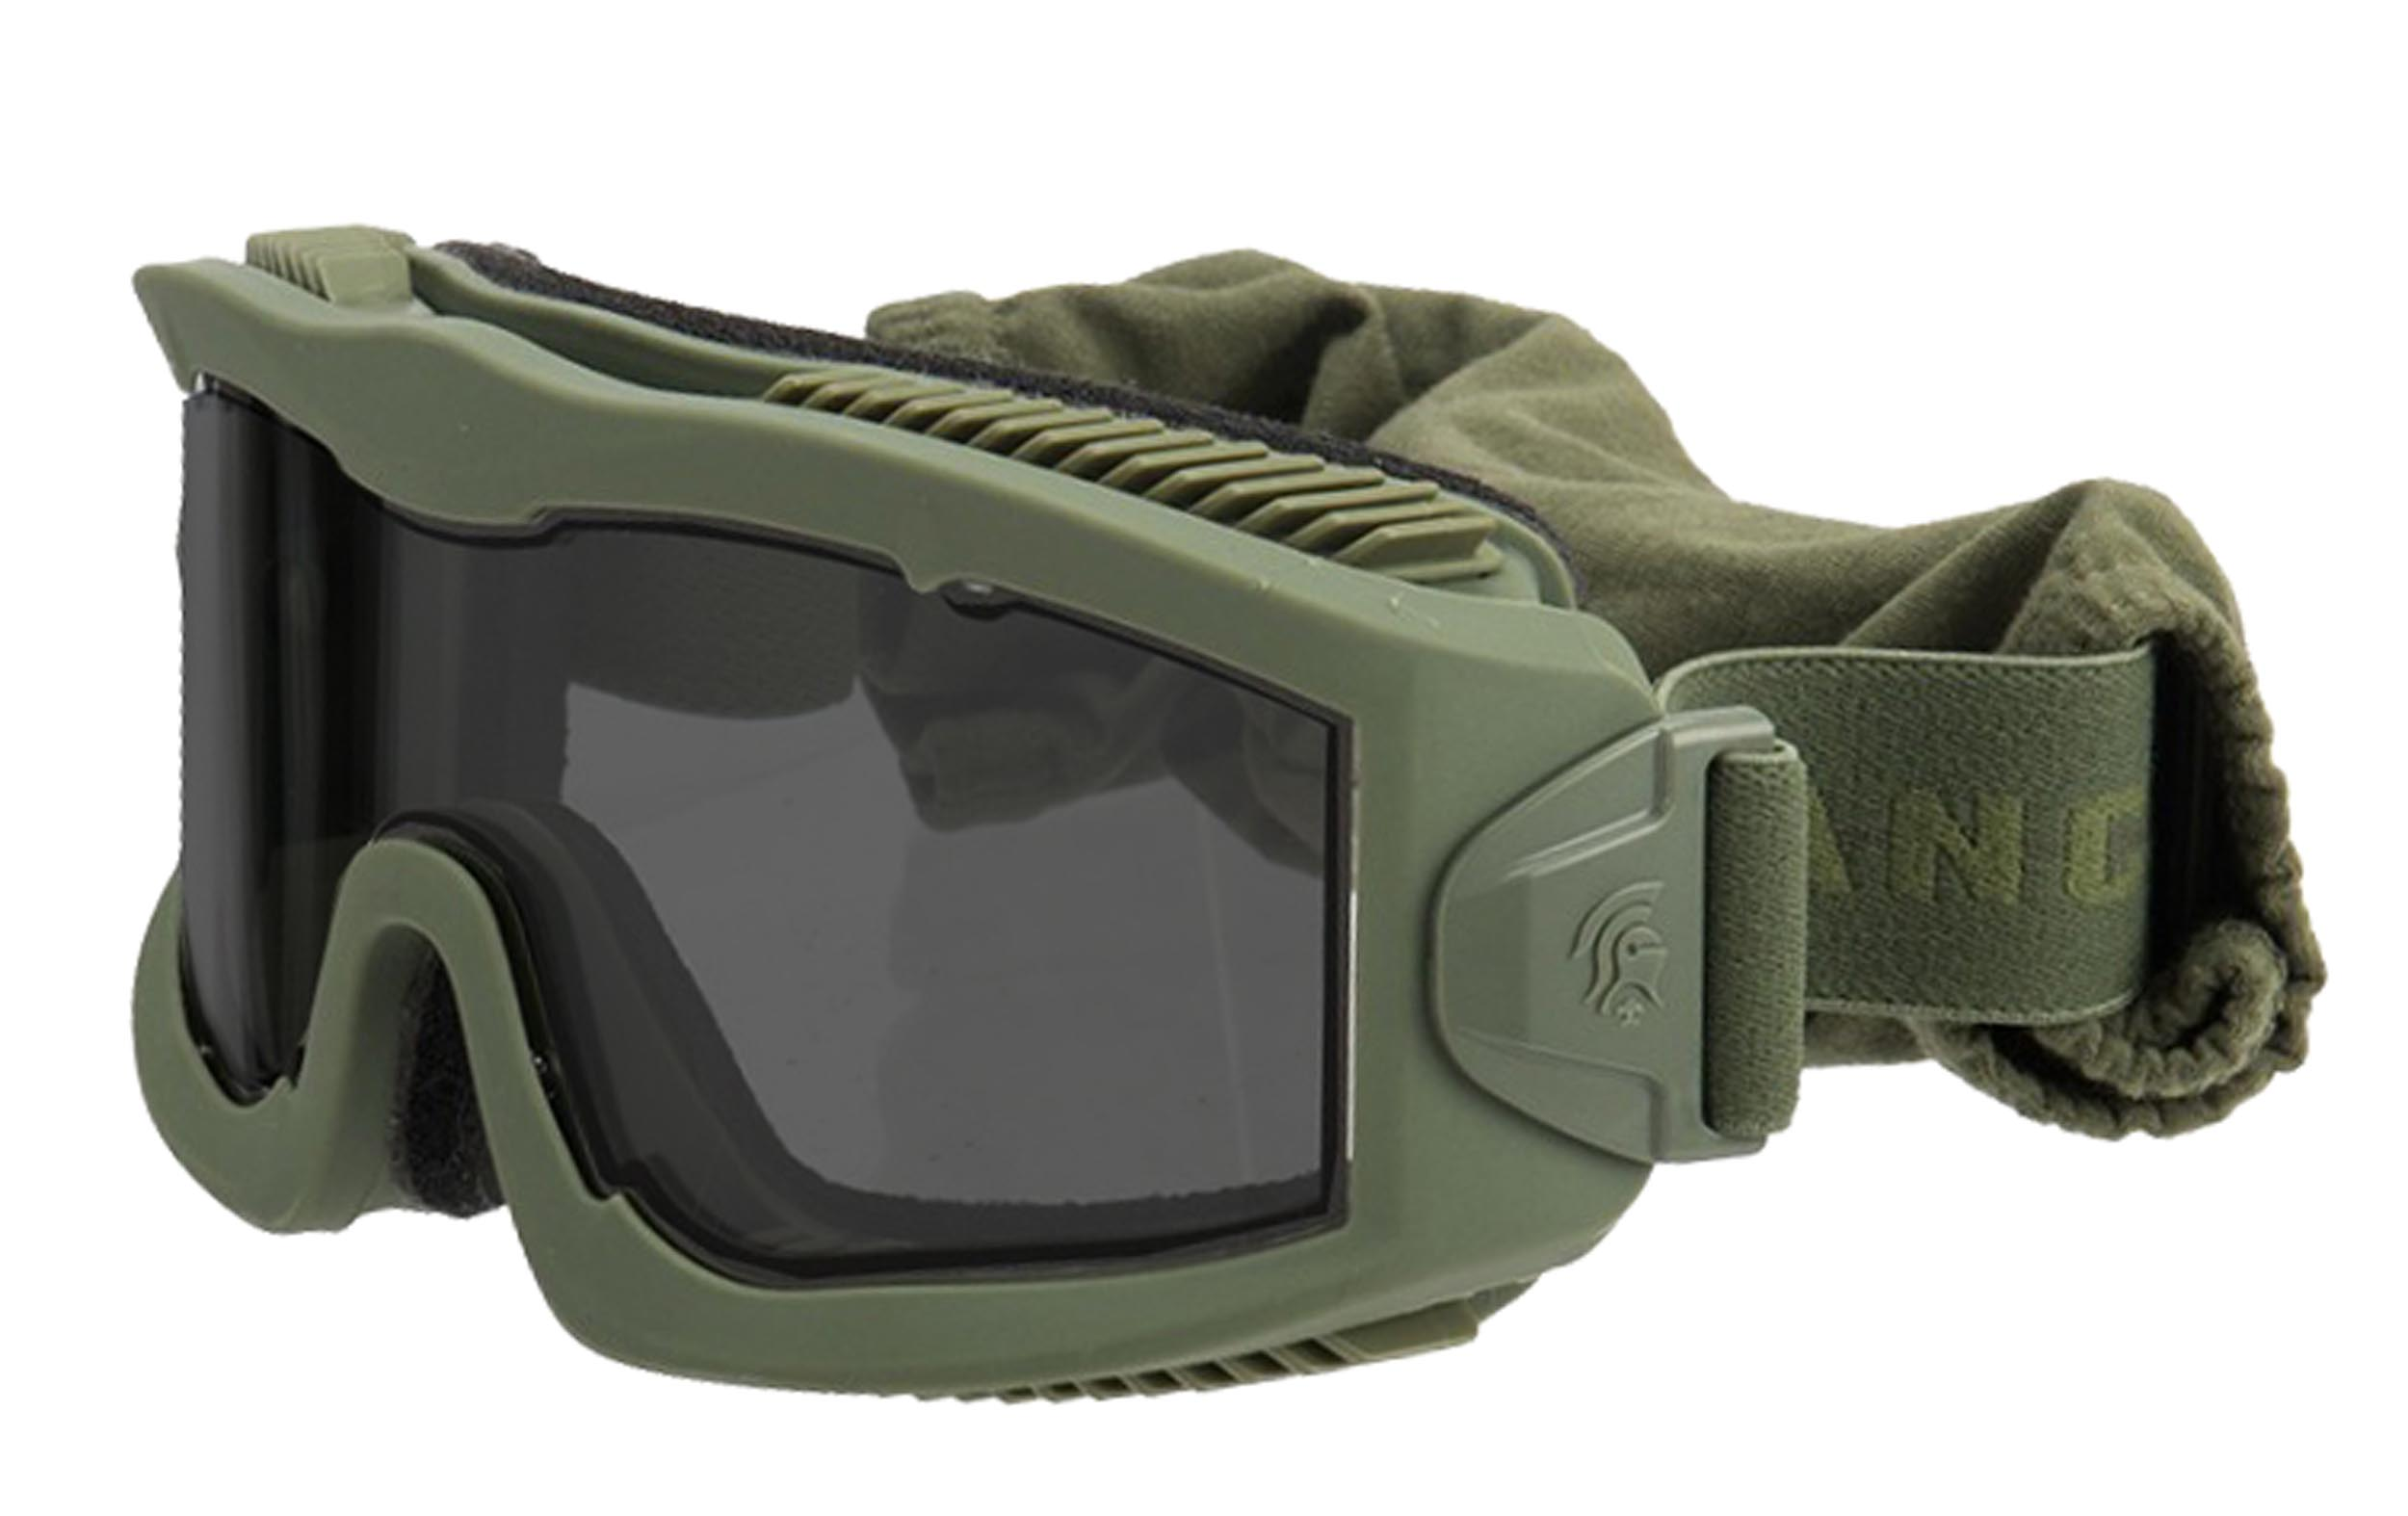 MAS204 Airsoft Mask AERO Series Thermal OD smoke - MAS204